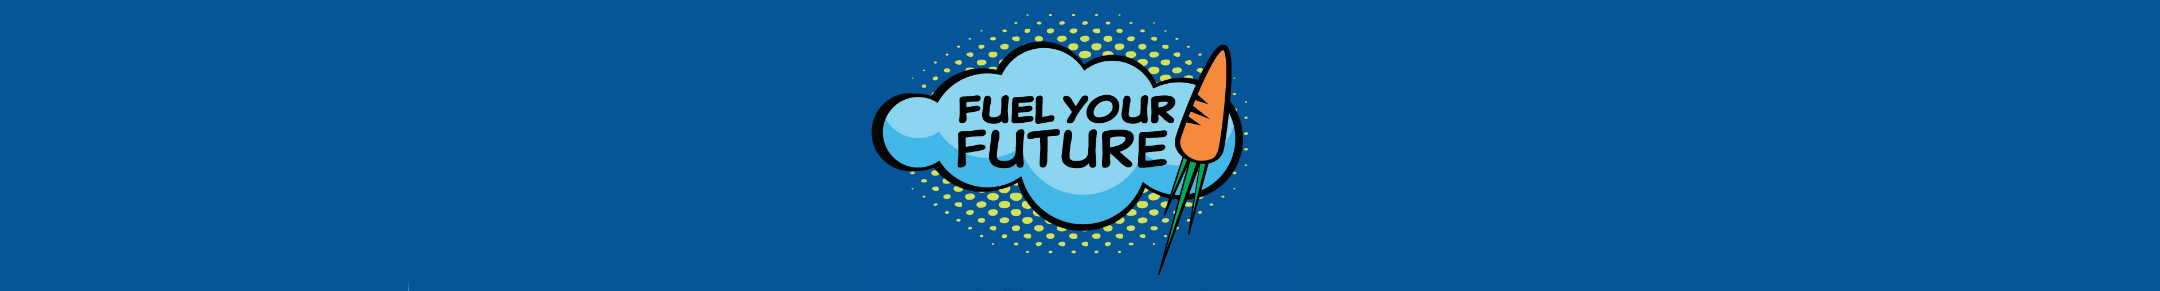 fuel your future